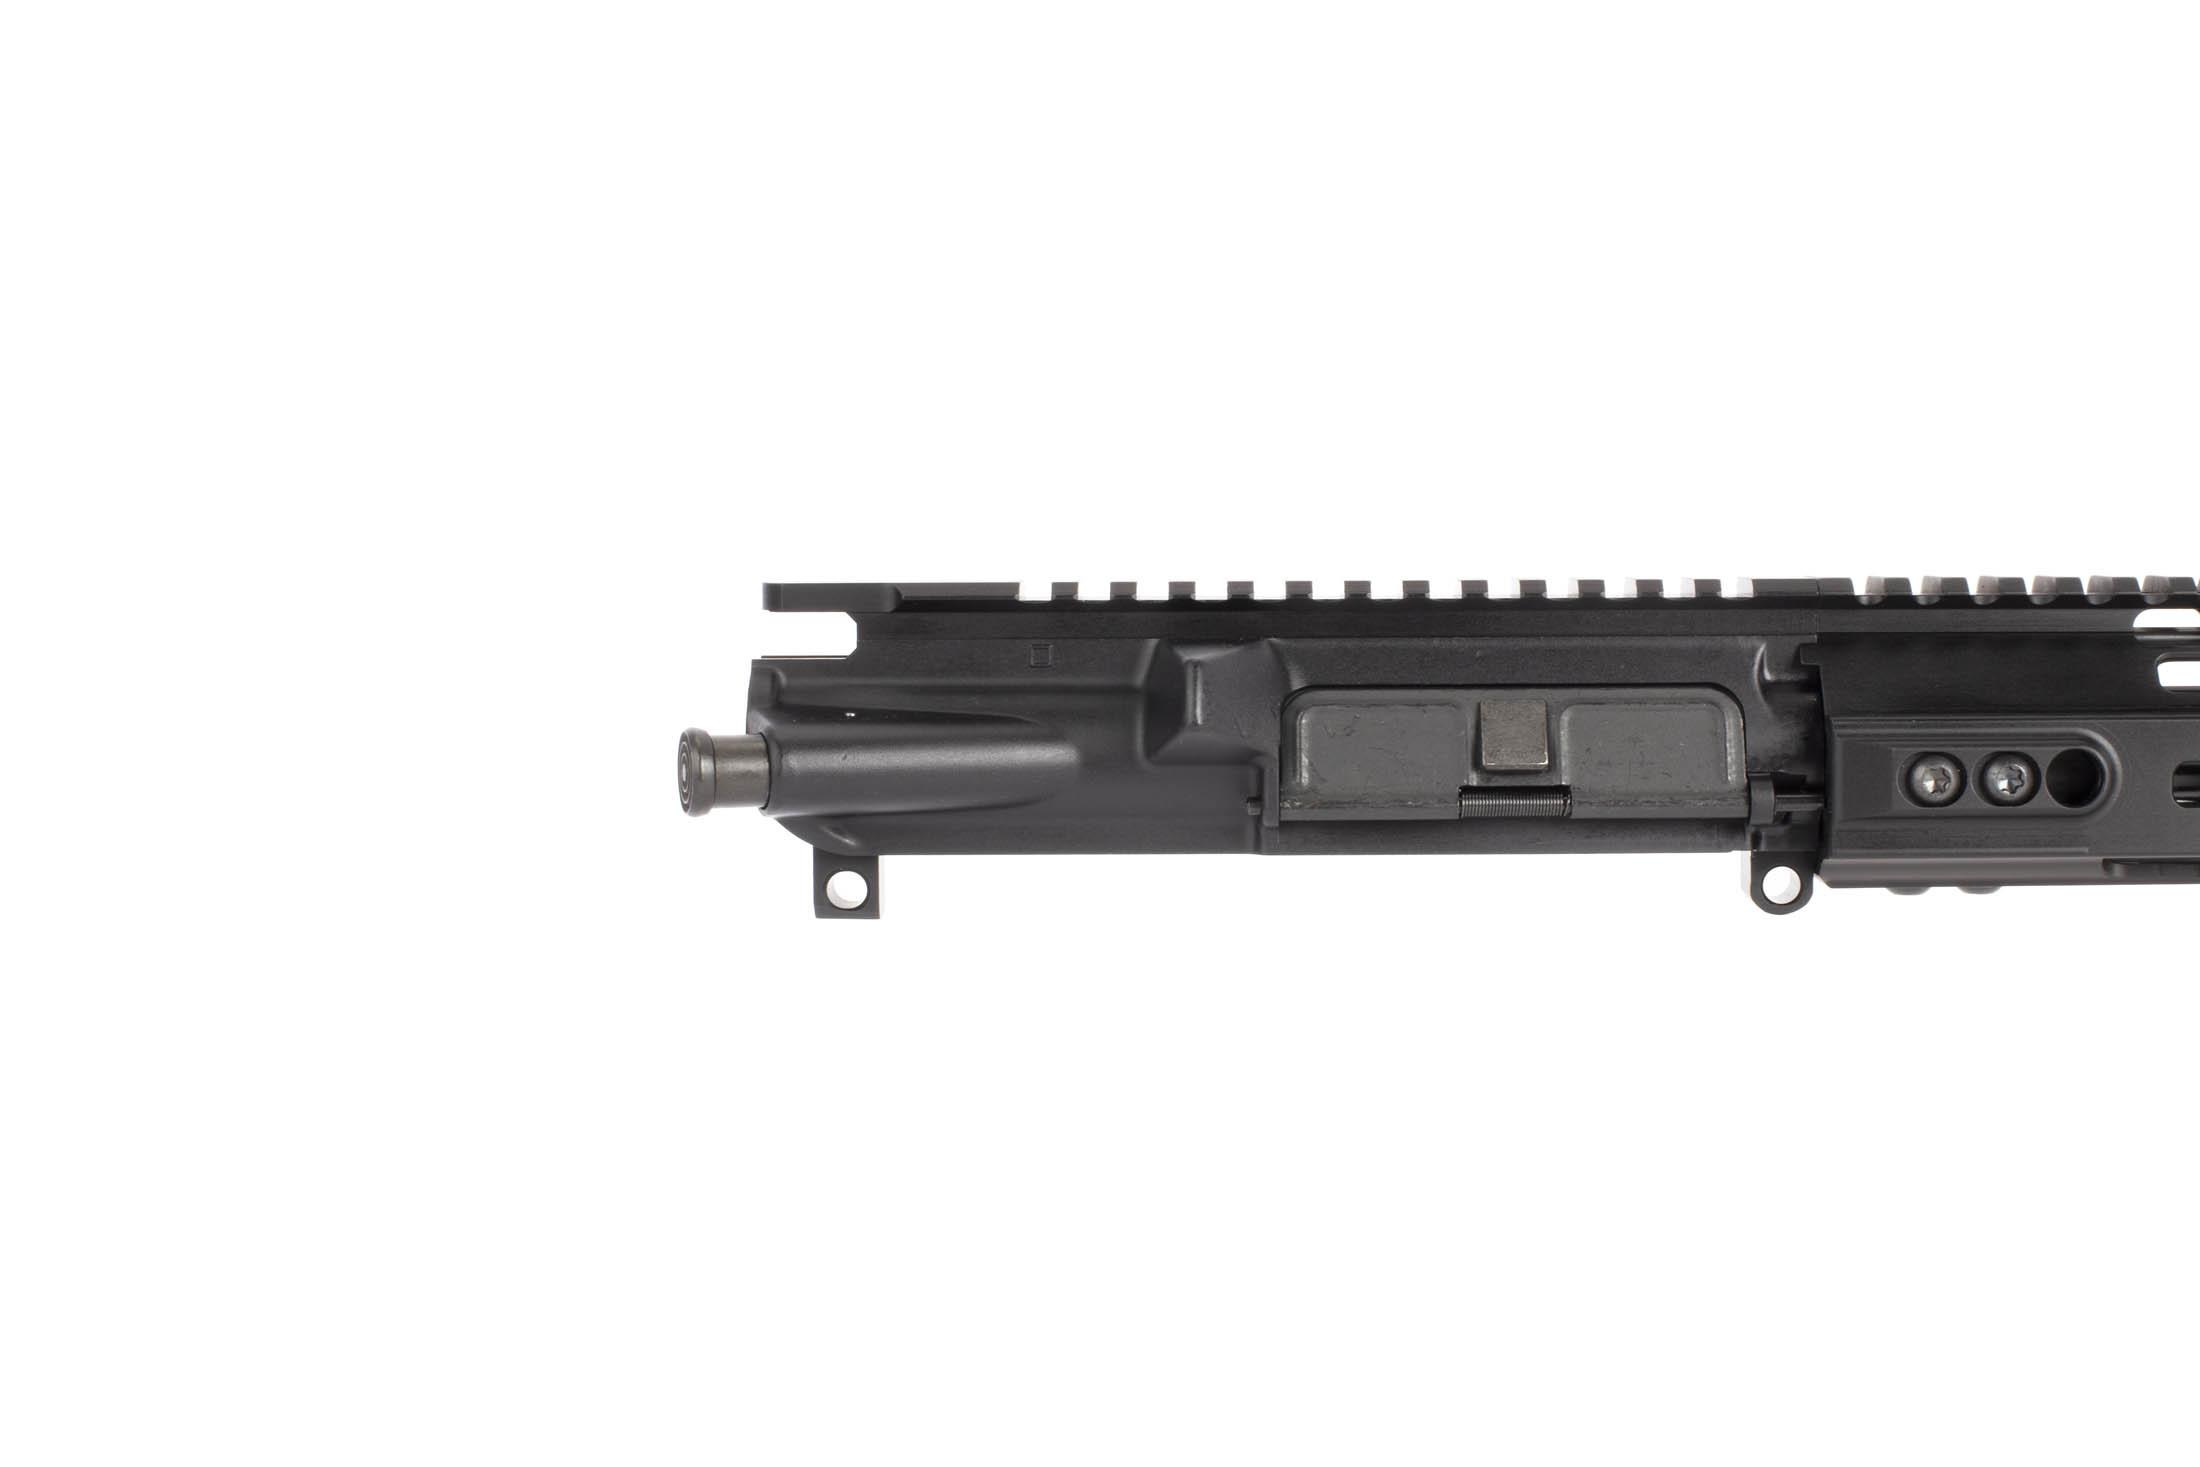 The Kdg exclusive ar15 complete barreled upper receiver comes with dust cover and forward assist